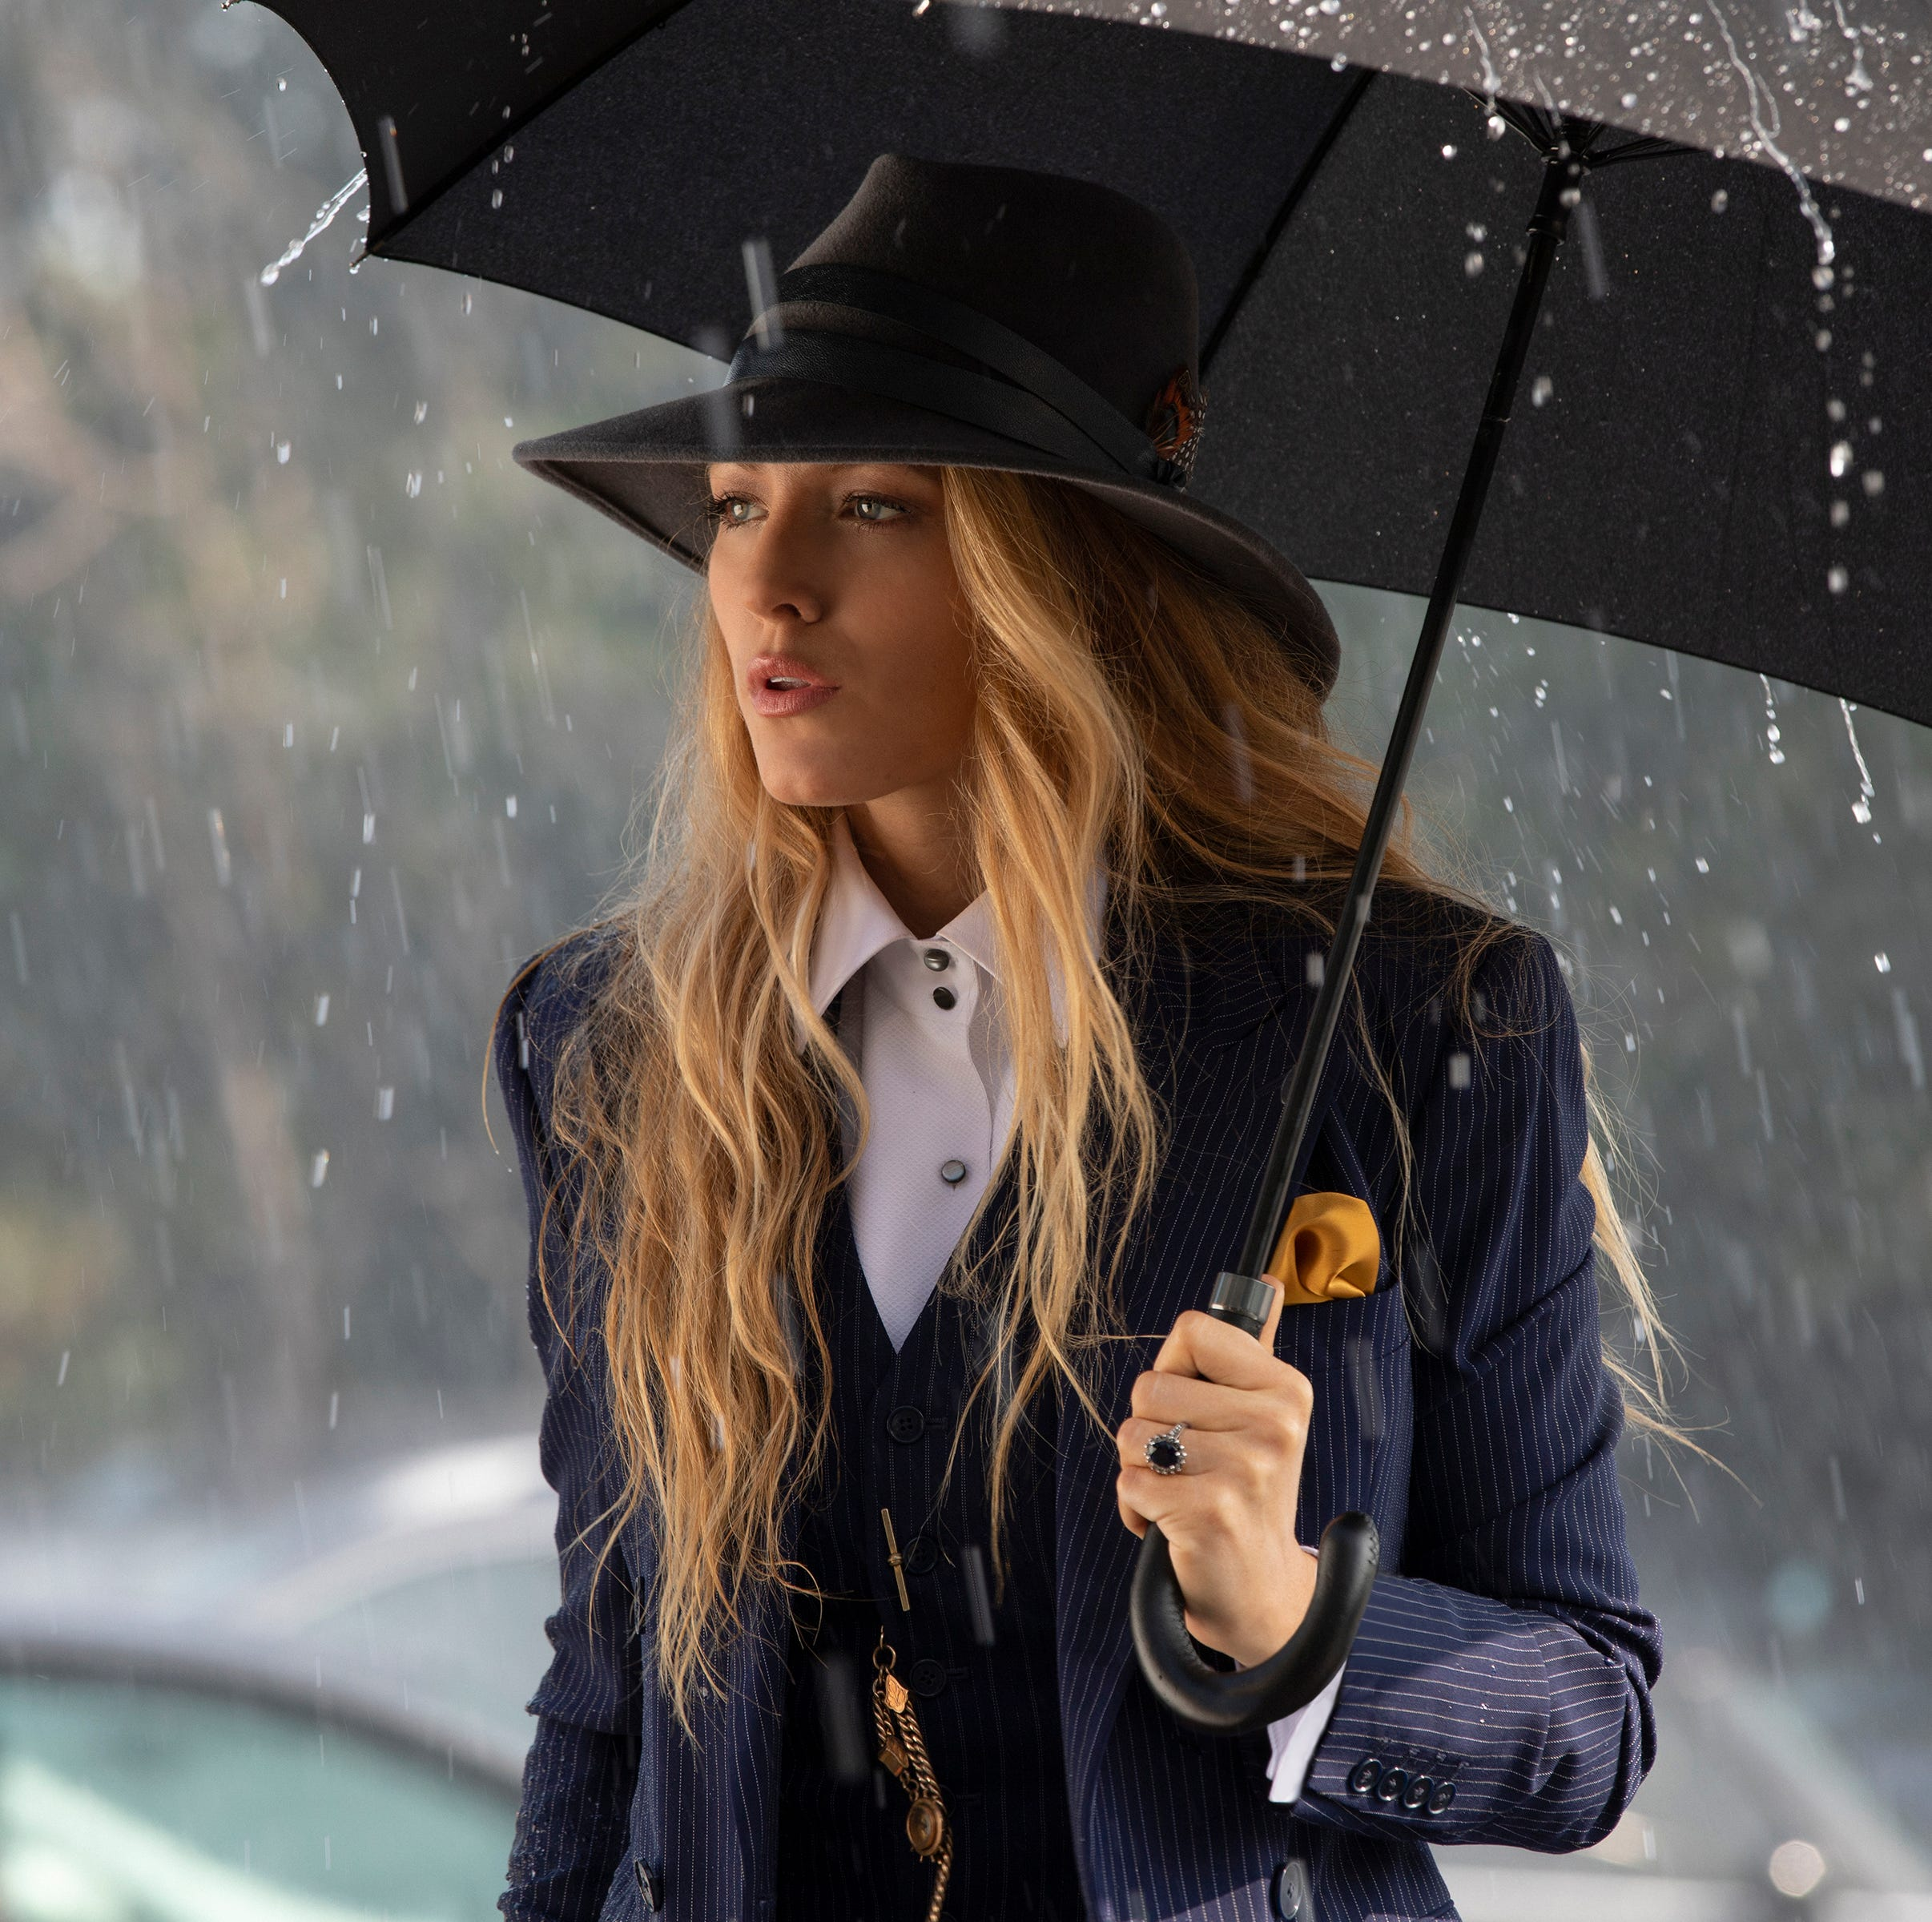 'A Simple Favor' review: Anna Kendrick, Blake Lively are engaging in comic mystery